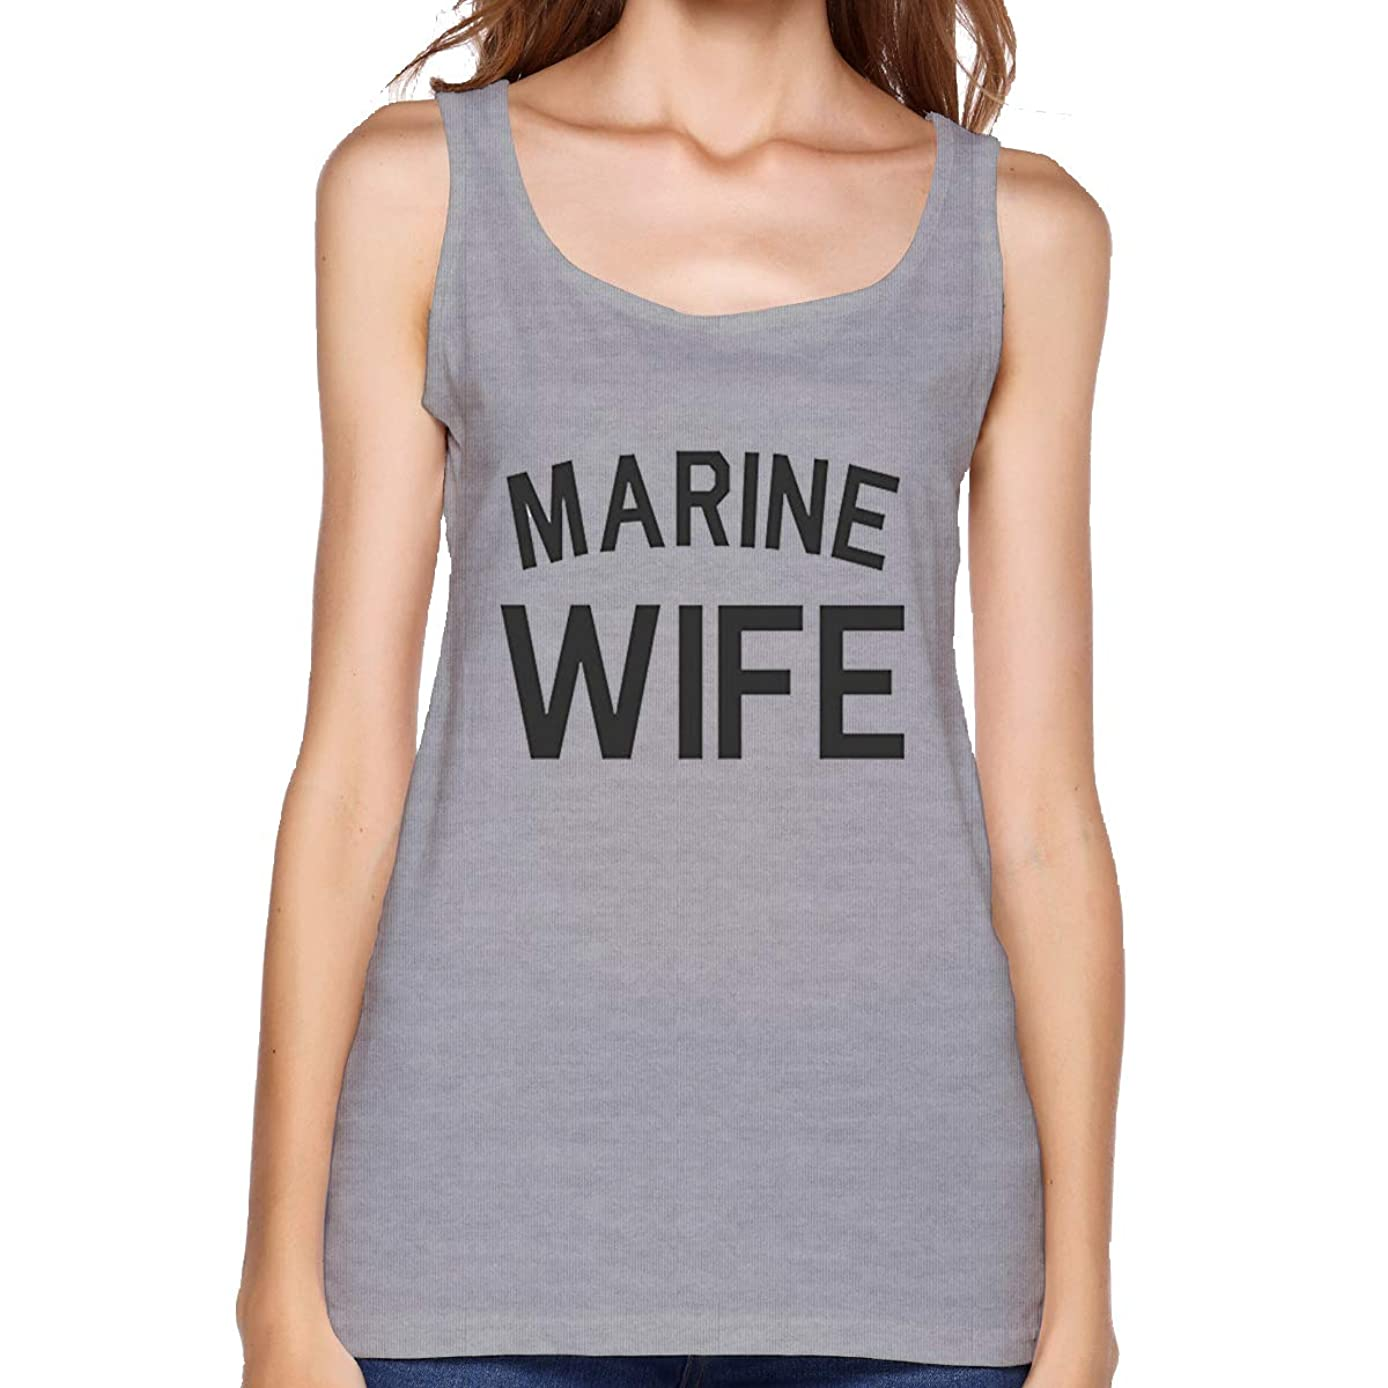 Marine Wife Women's Fashion Camisoles Premium Tank Top for Yoga Daily Wearing